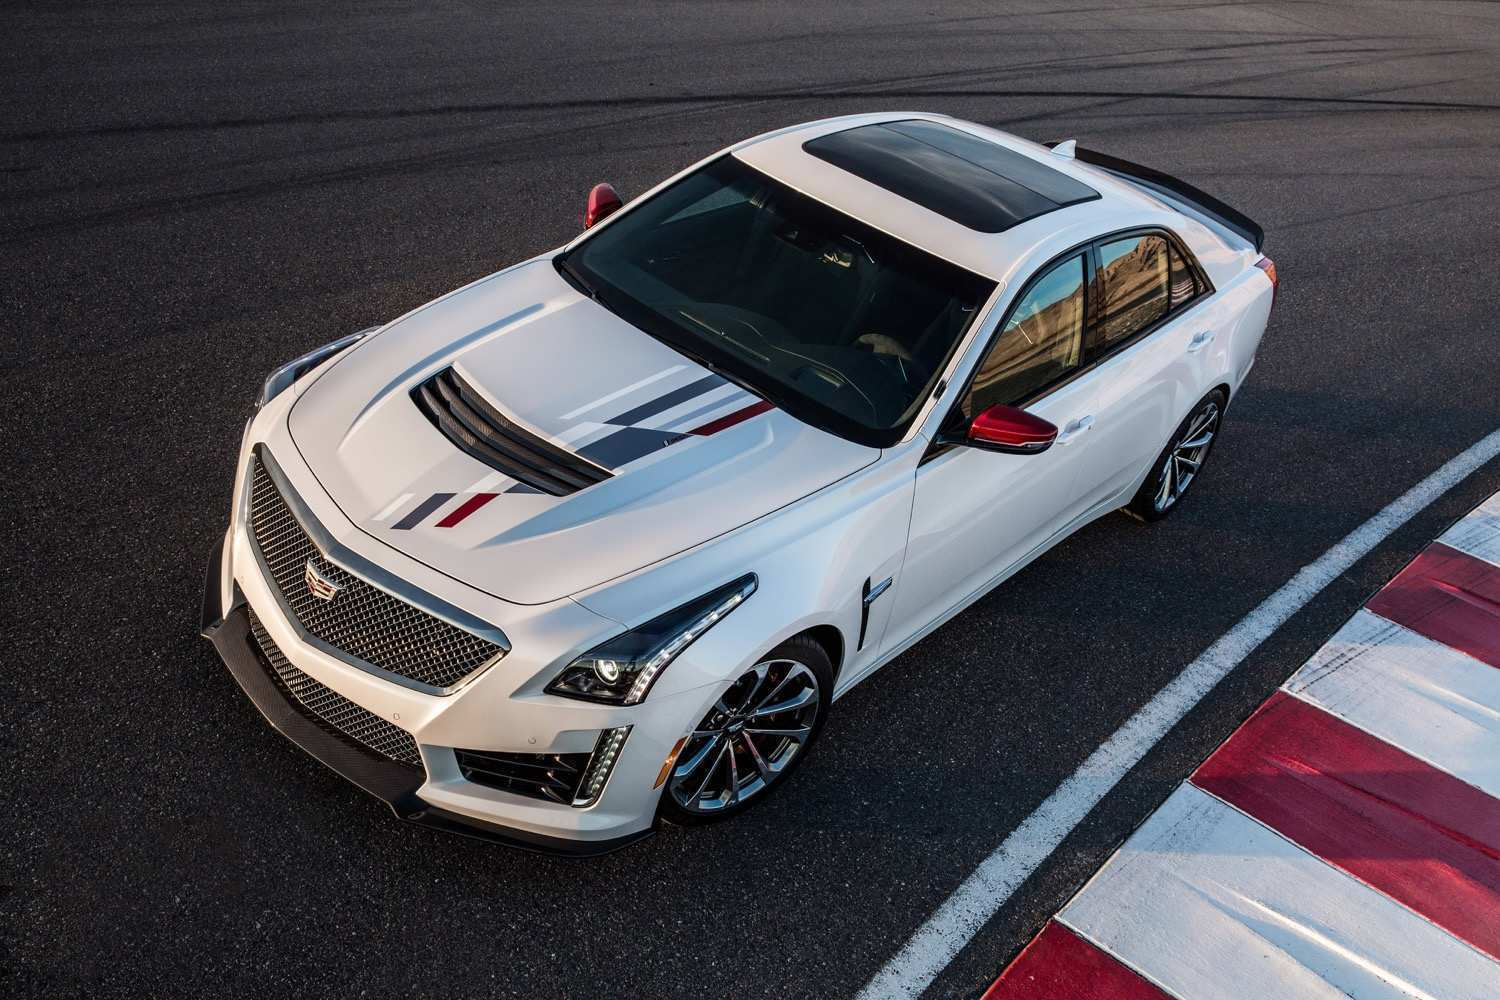 68 Gallery of 2019 Cts V Price with 2019 Cts V